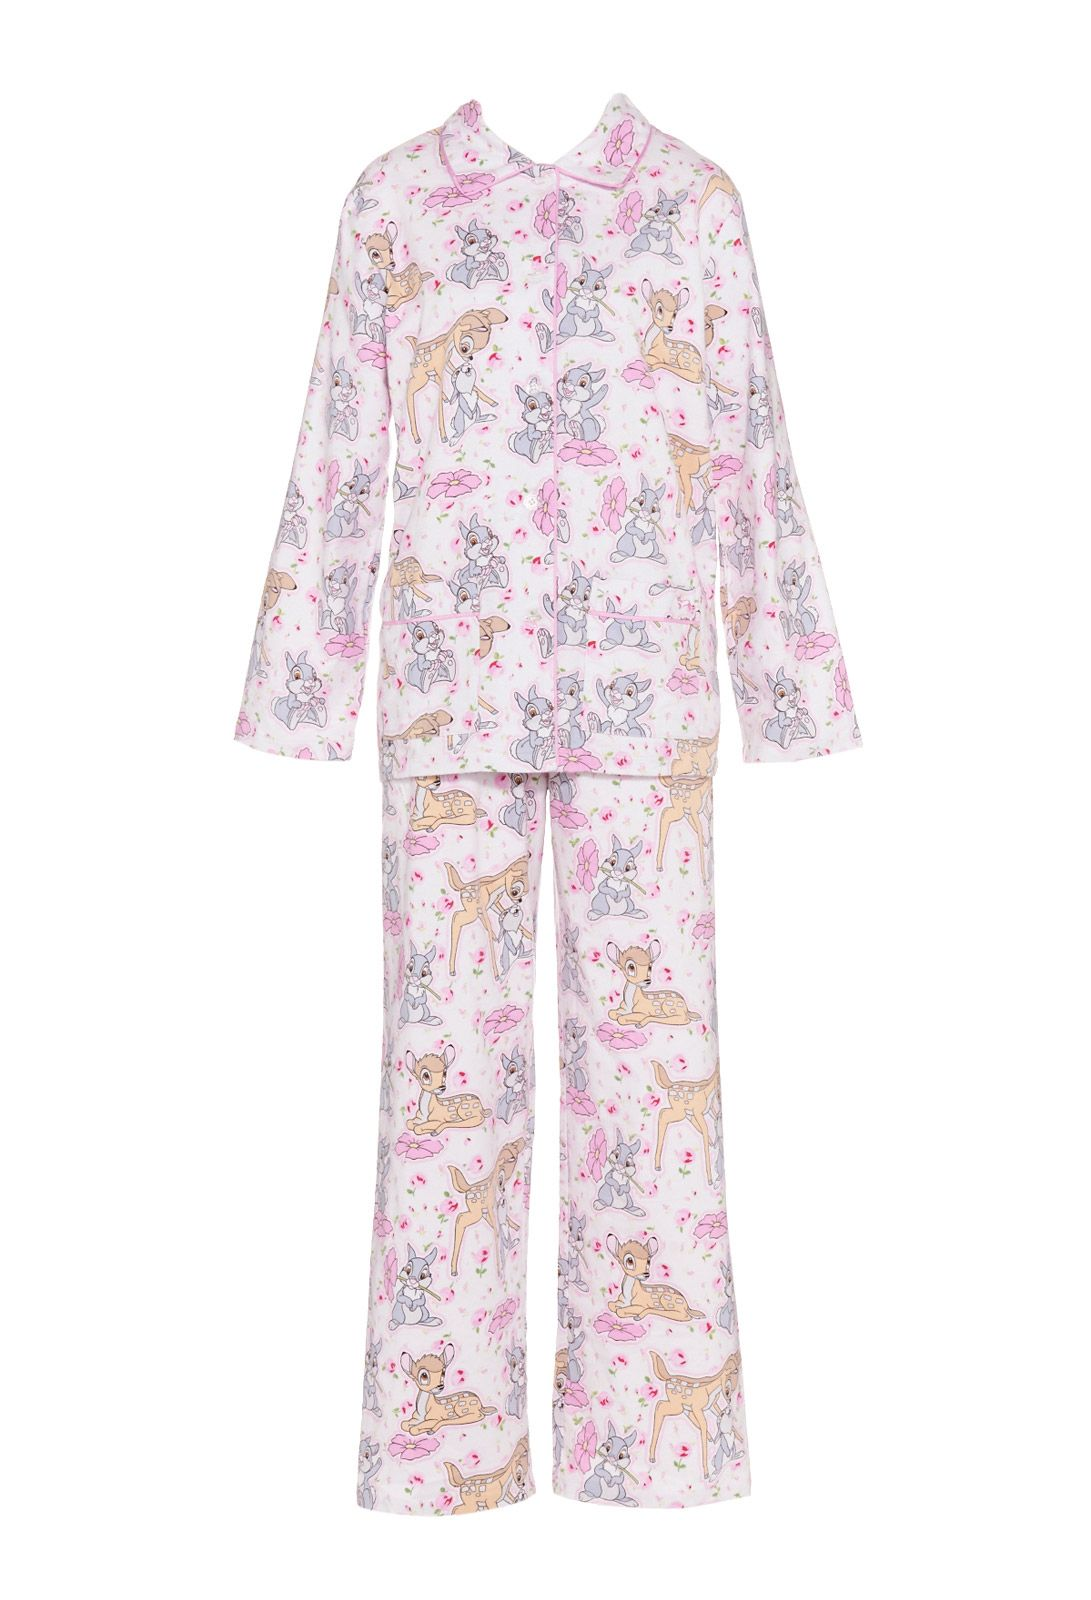 f529b555f9 Bambi PJ Set from Peter Alexander | Pajamas | Pyjamas, Sweat dress ...